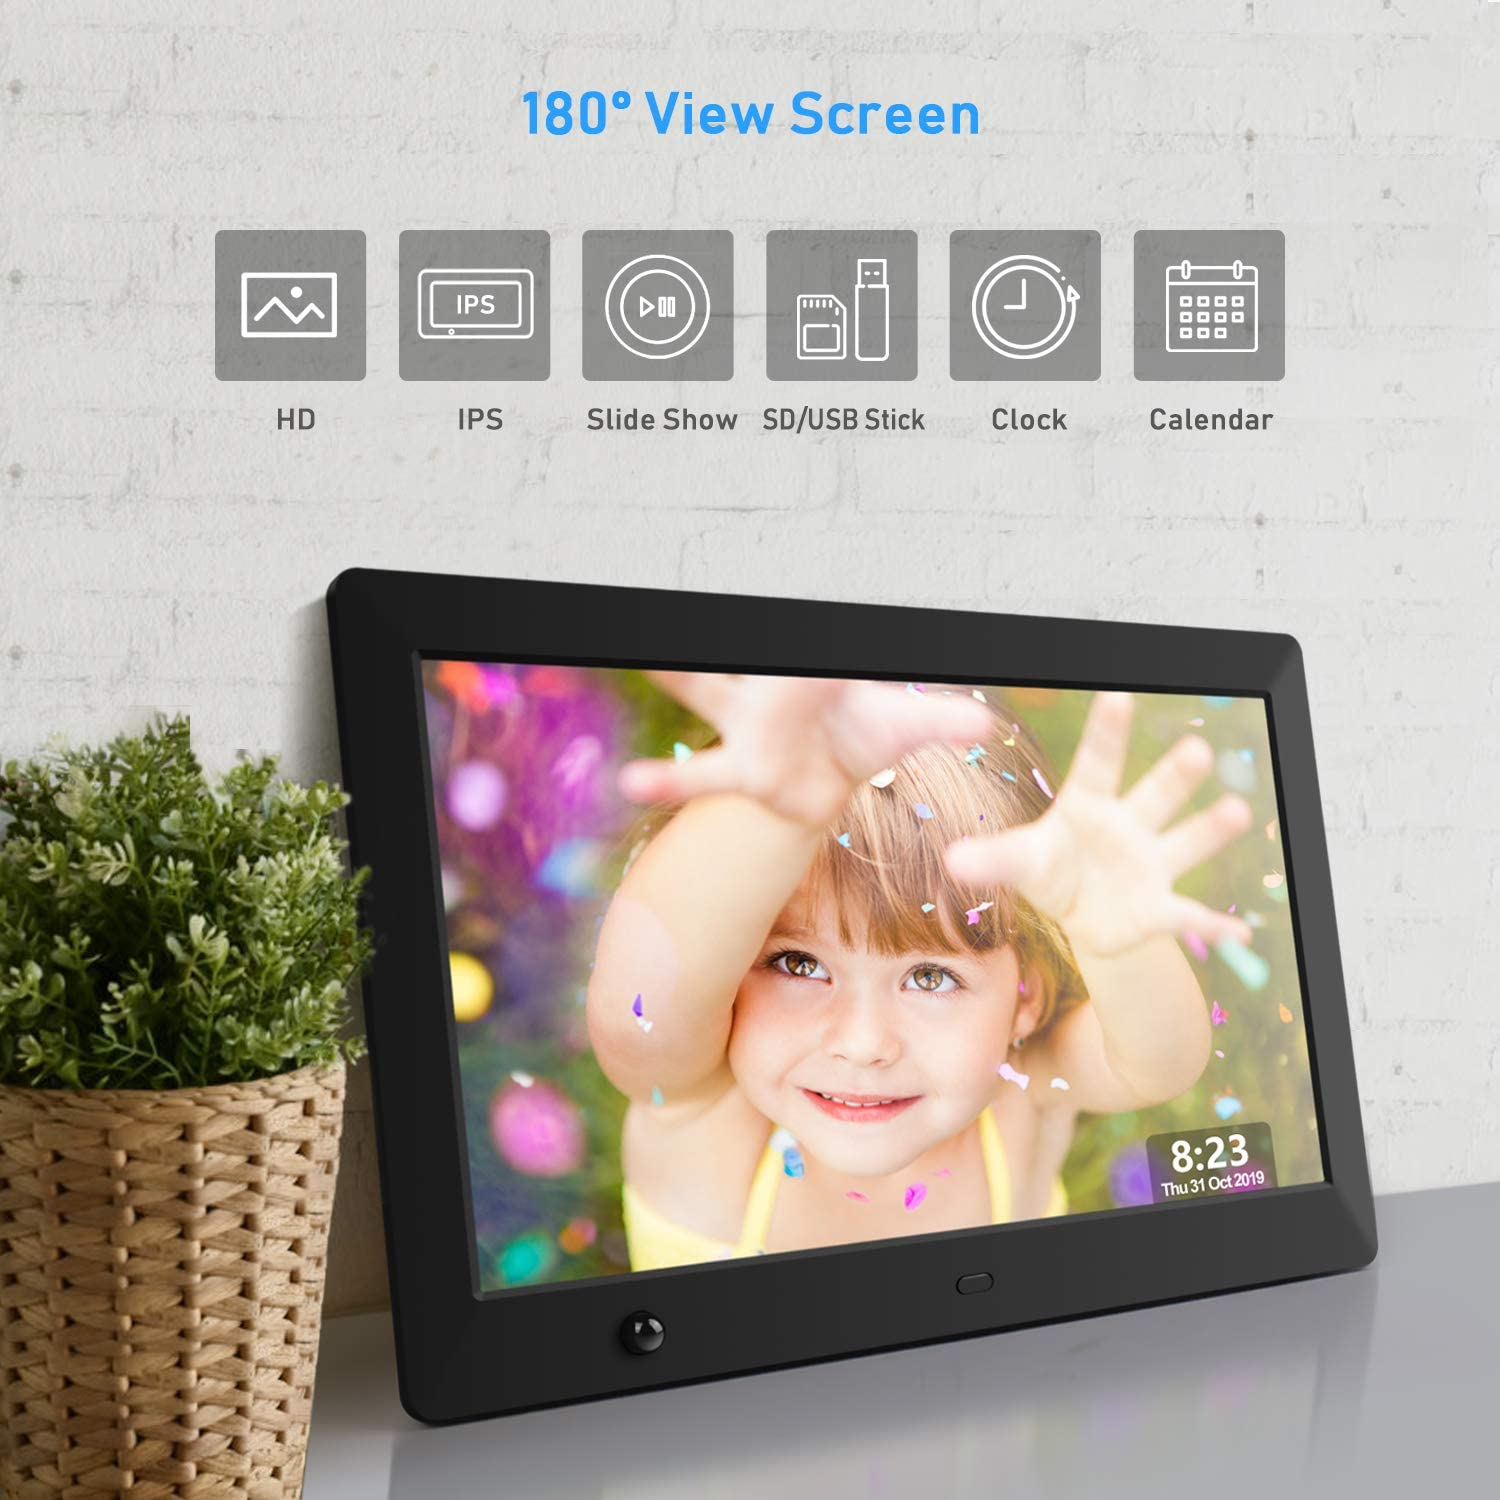 Support USB and SD Card IPS Electronic Picture Frame with Motion Sensor Dhwazz 10.5 Inch Digital Photo Frame Video and Music High Resolution 180 Degree Display Photo